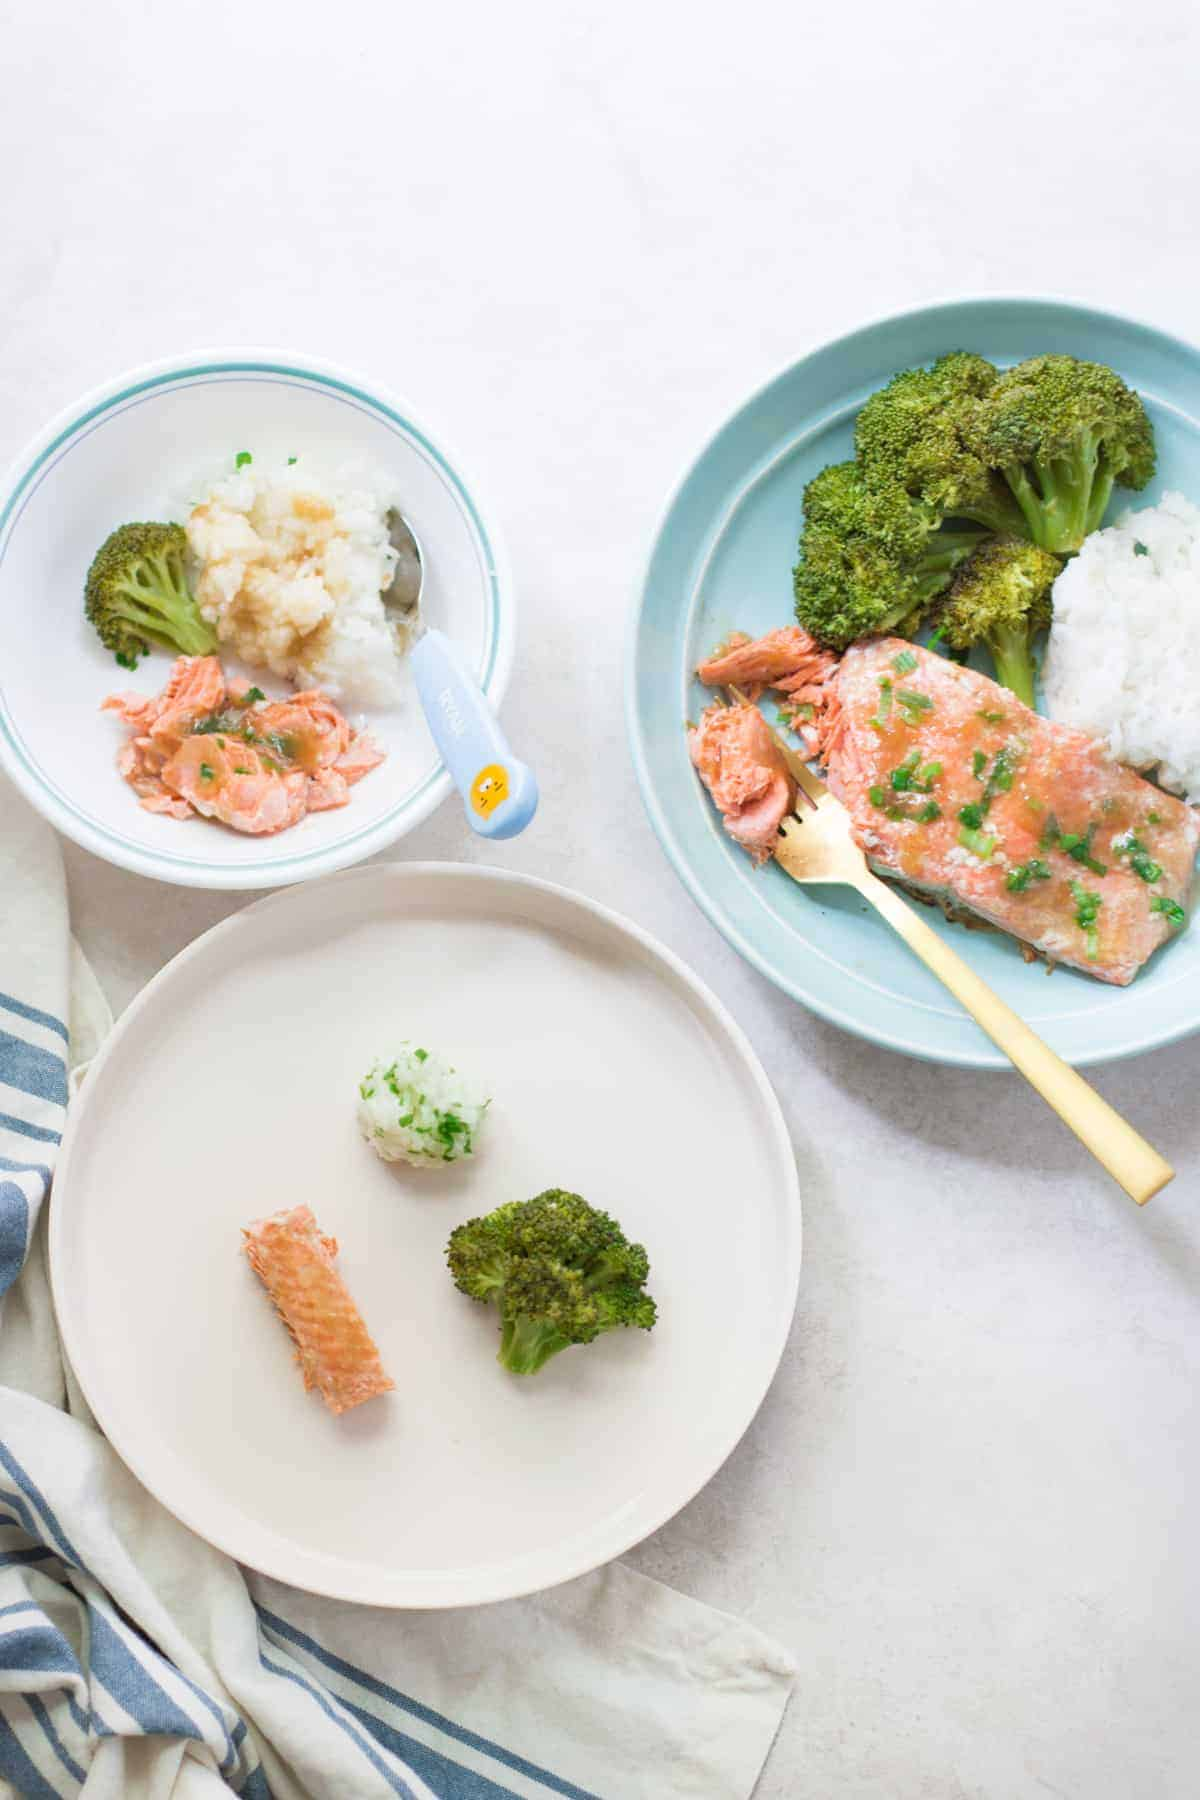 cooked salmon with rice and broccoli served three ways, for baby, toddler, and adult